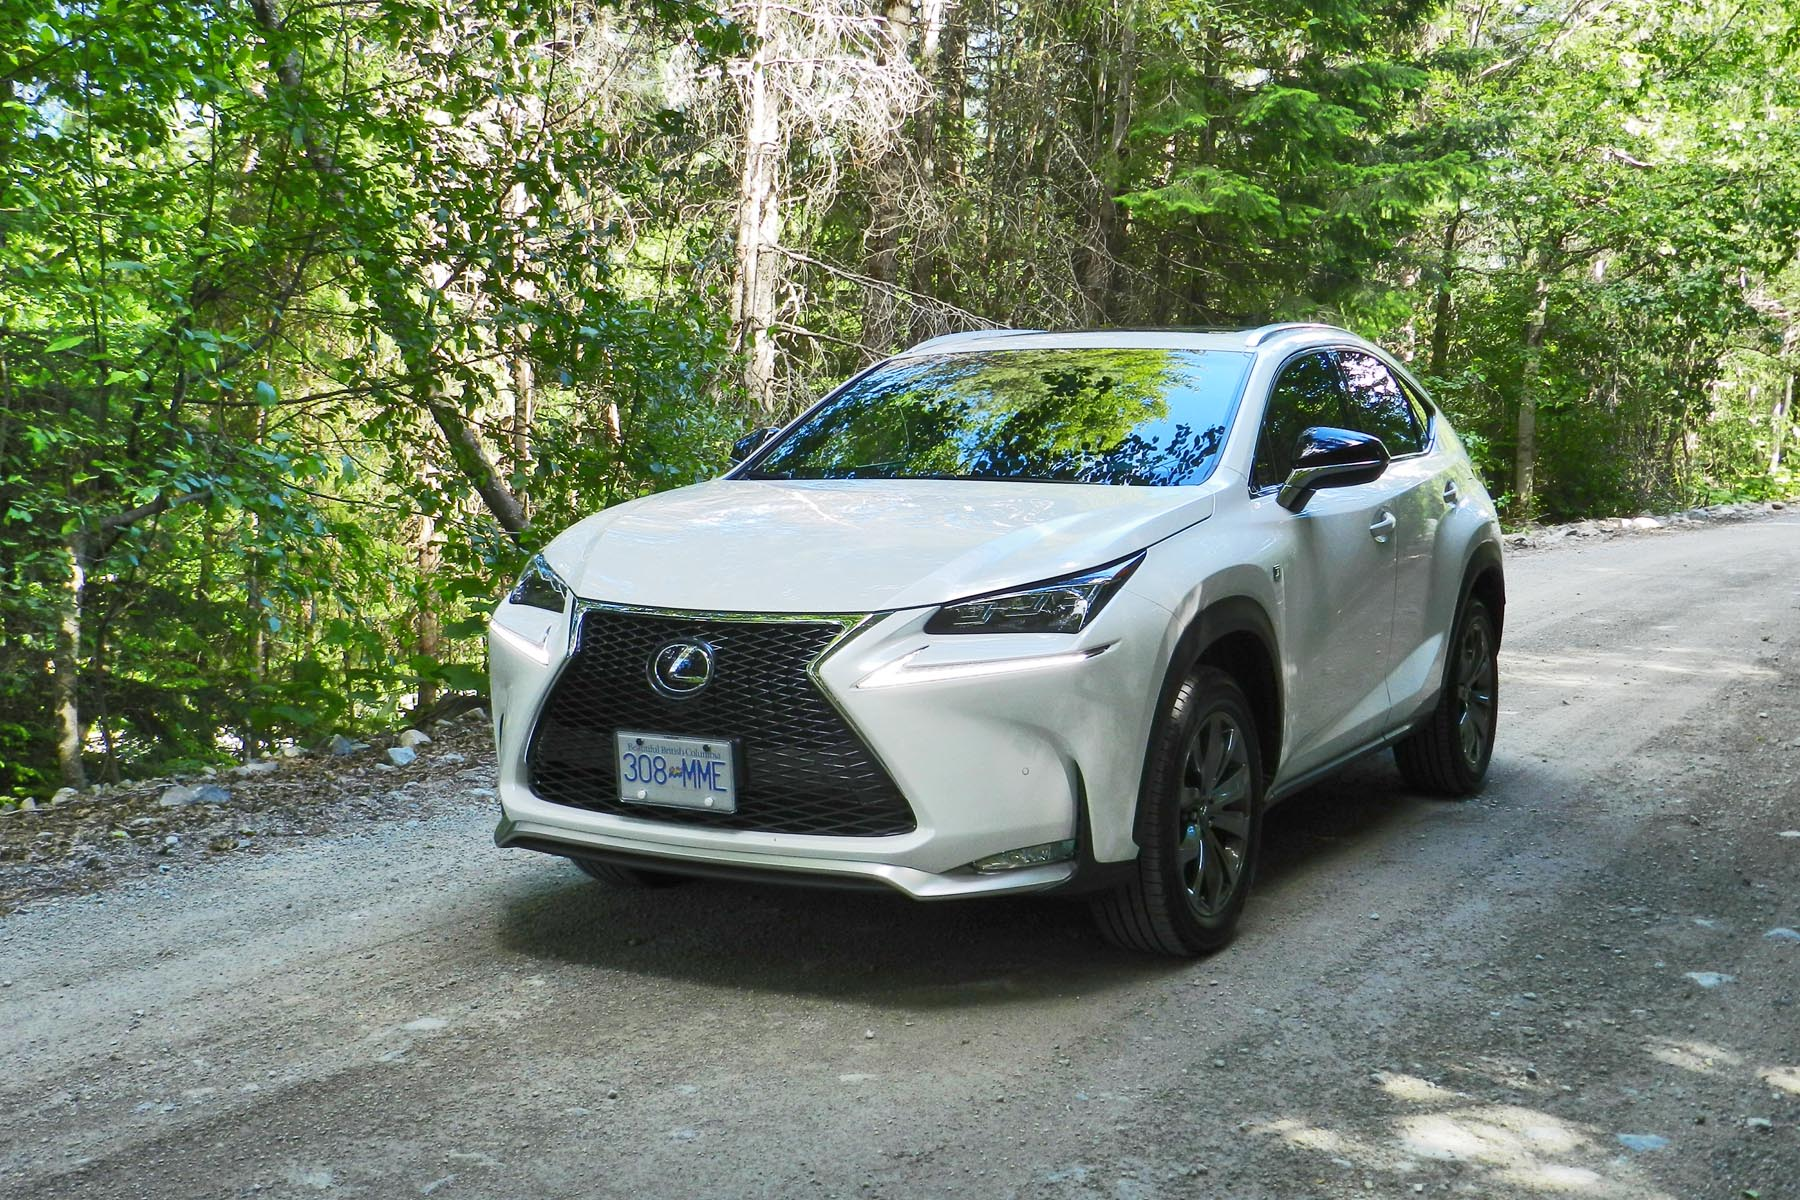 l rapha driving with lexus road created review nx reviews suv lexusnx test rearangle